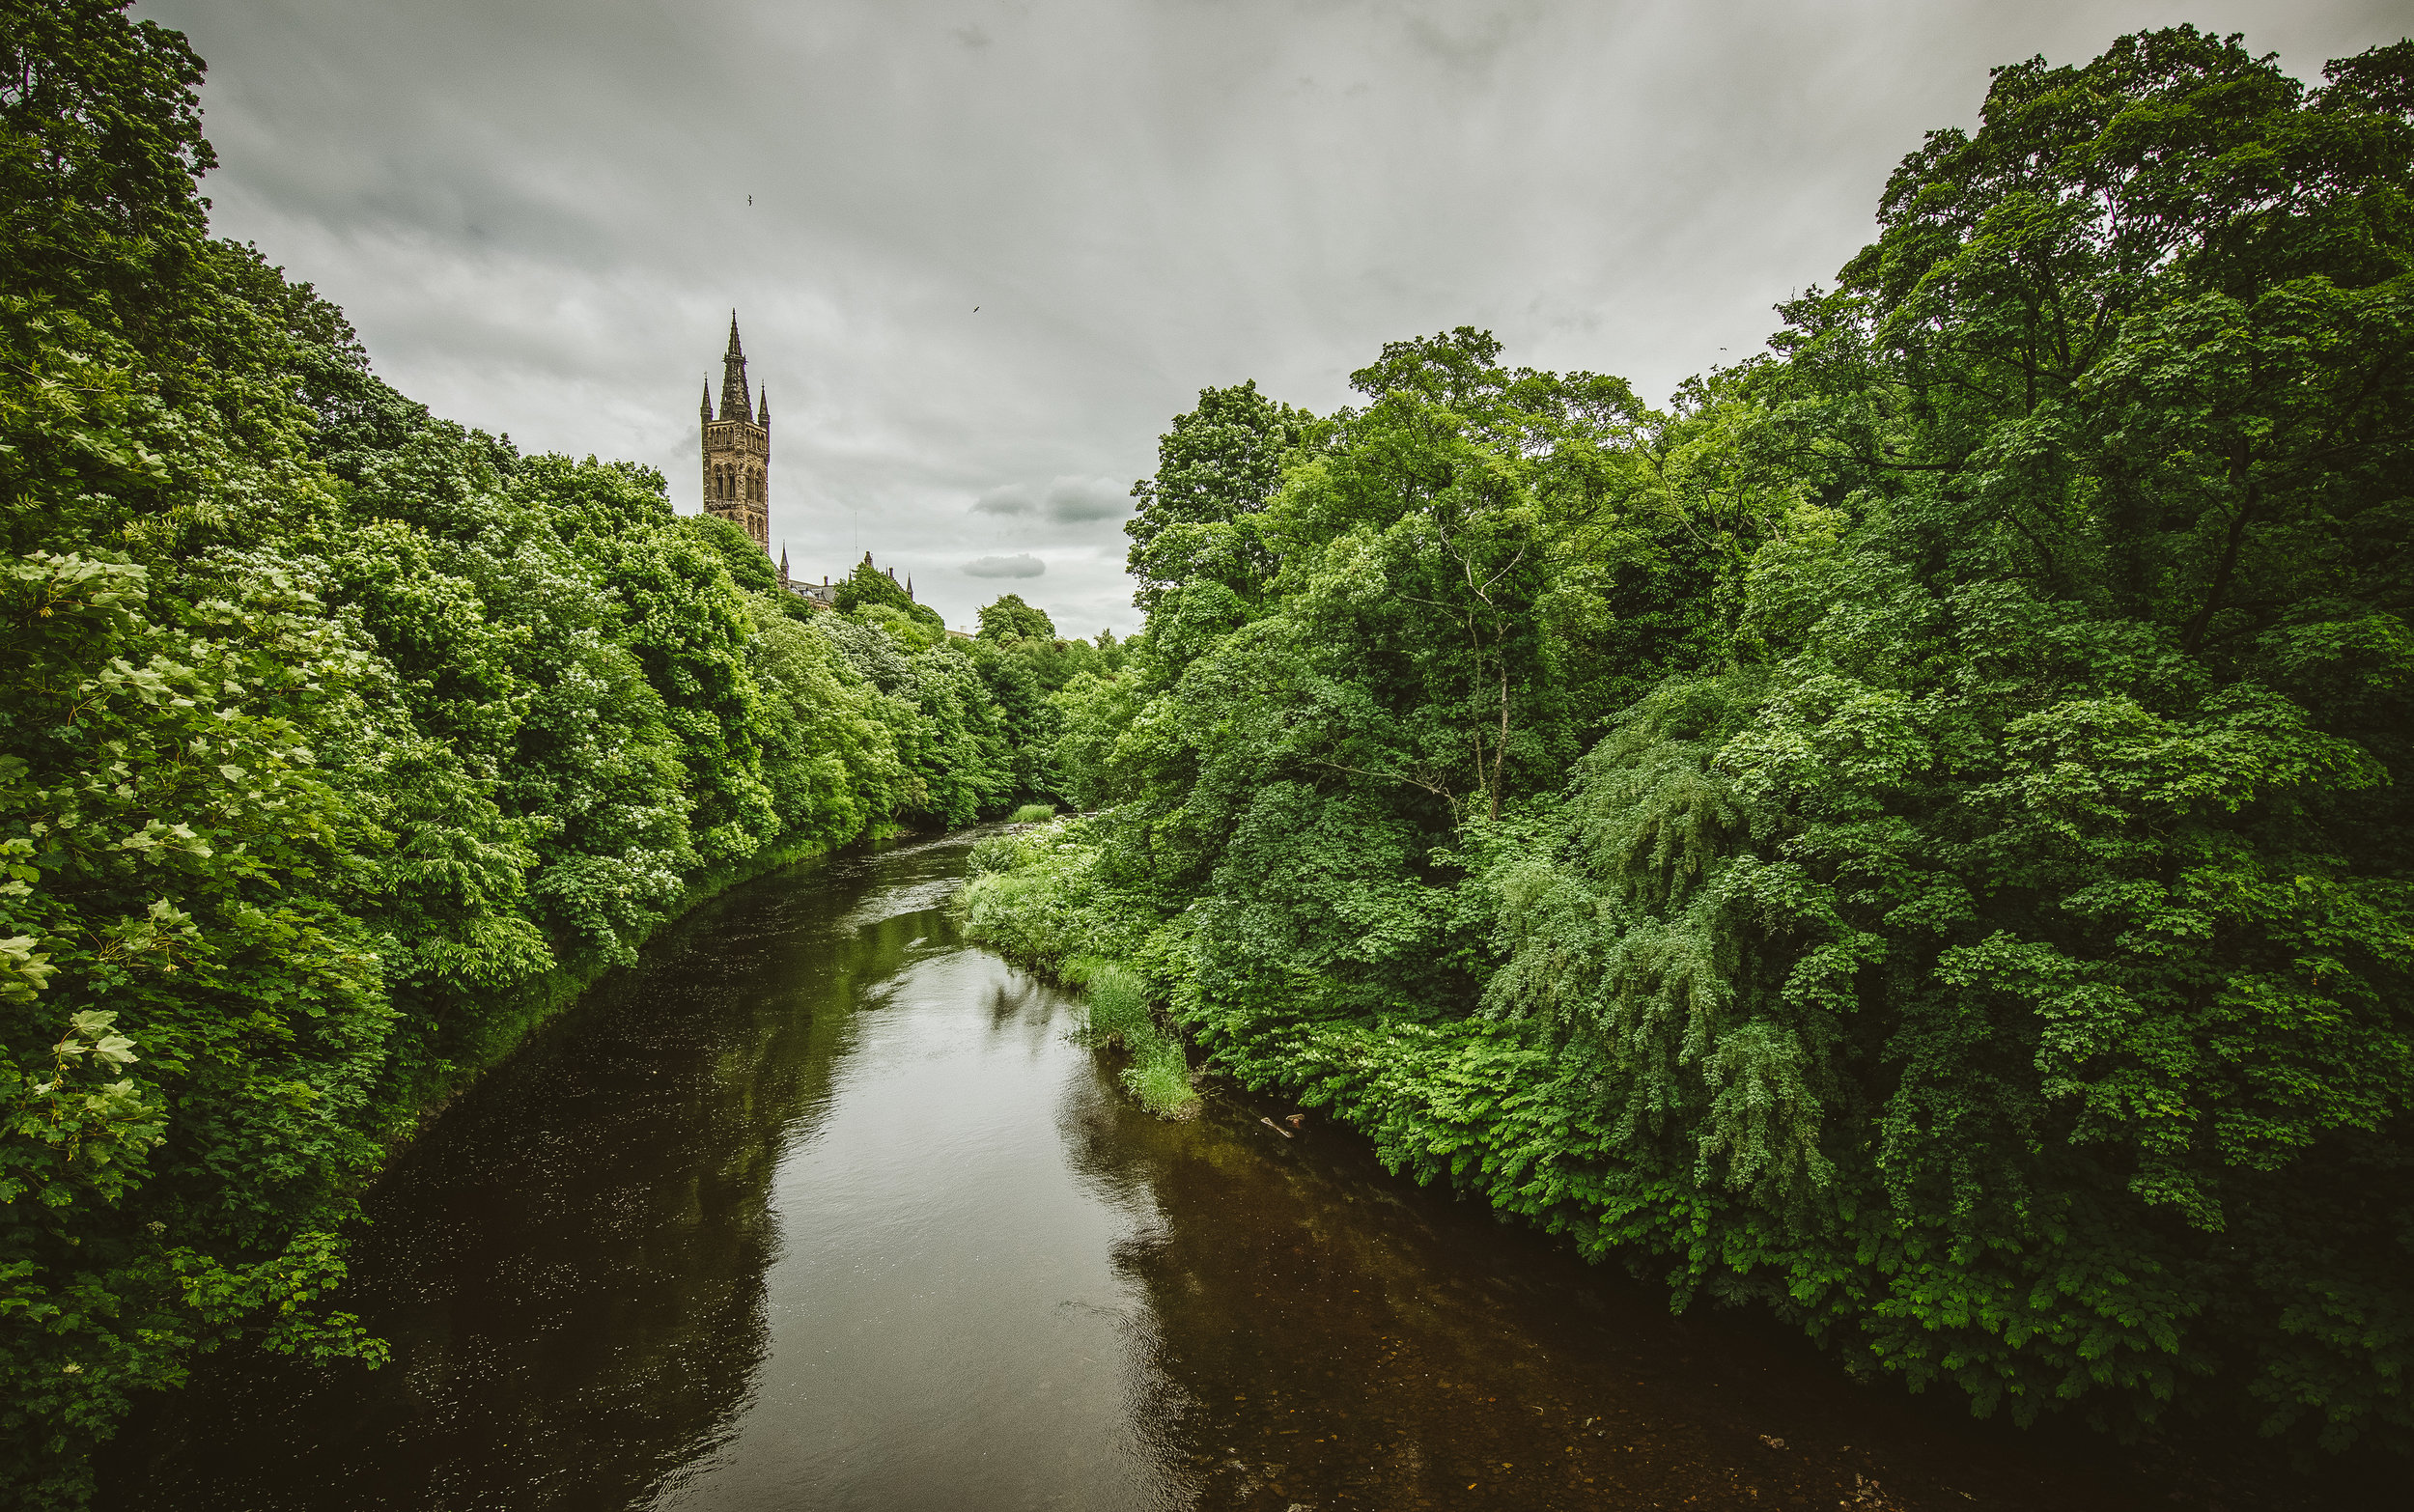 The River Kelvin with the Kelvingrove hanging out in the background.